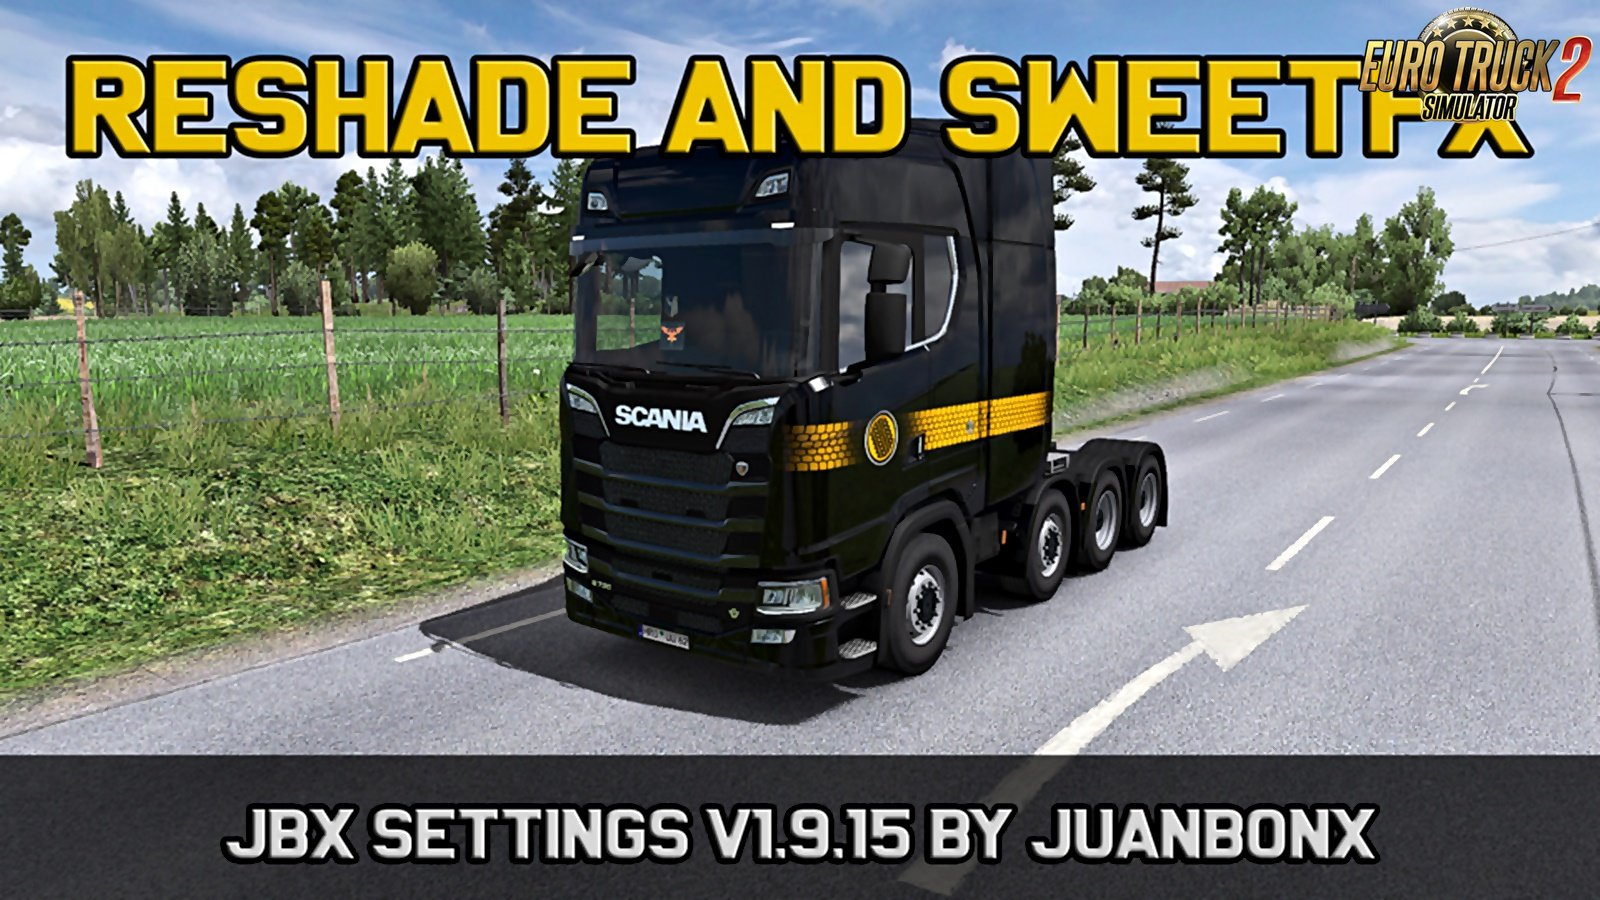 JBX Settings v1.9.15 Reshade and SweetFX for Ets2